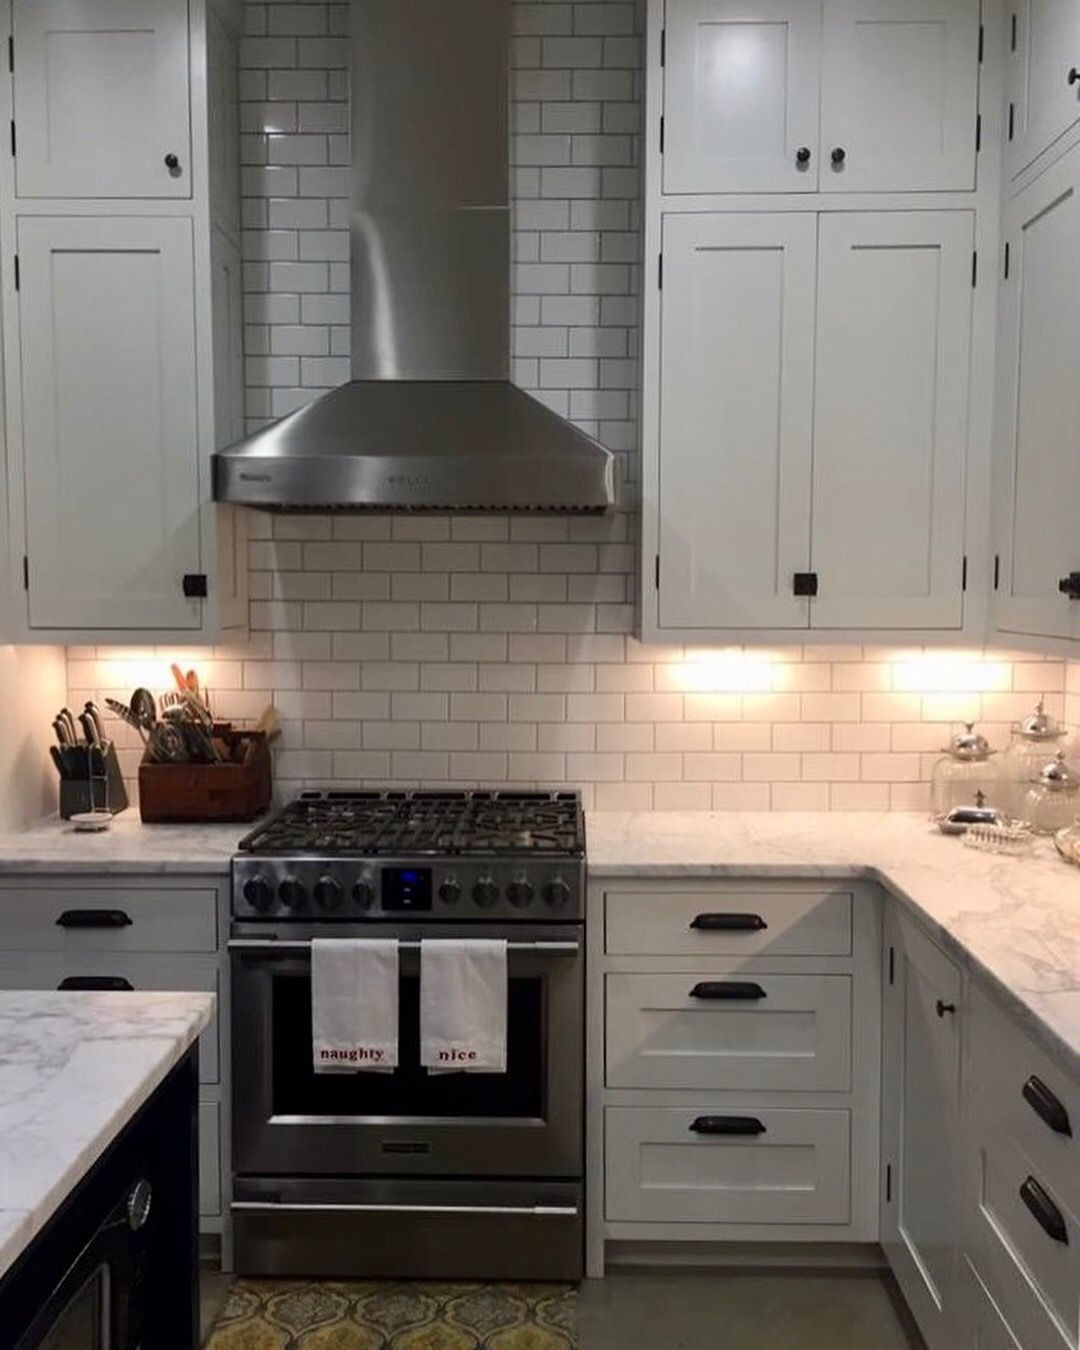 Custom Cabinets Inset Square Panel Shaker Doors With Exposed Hinges Check Out Photo Gallery On Our Site For I Custom Cabinetry Kitchen Kitchen Cupboard Doors